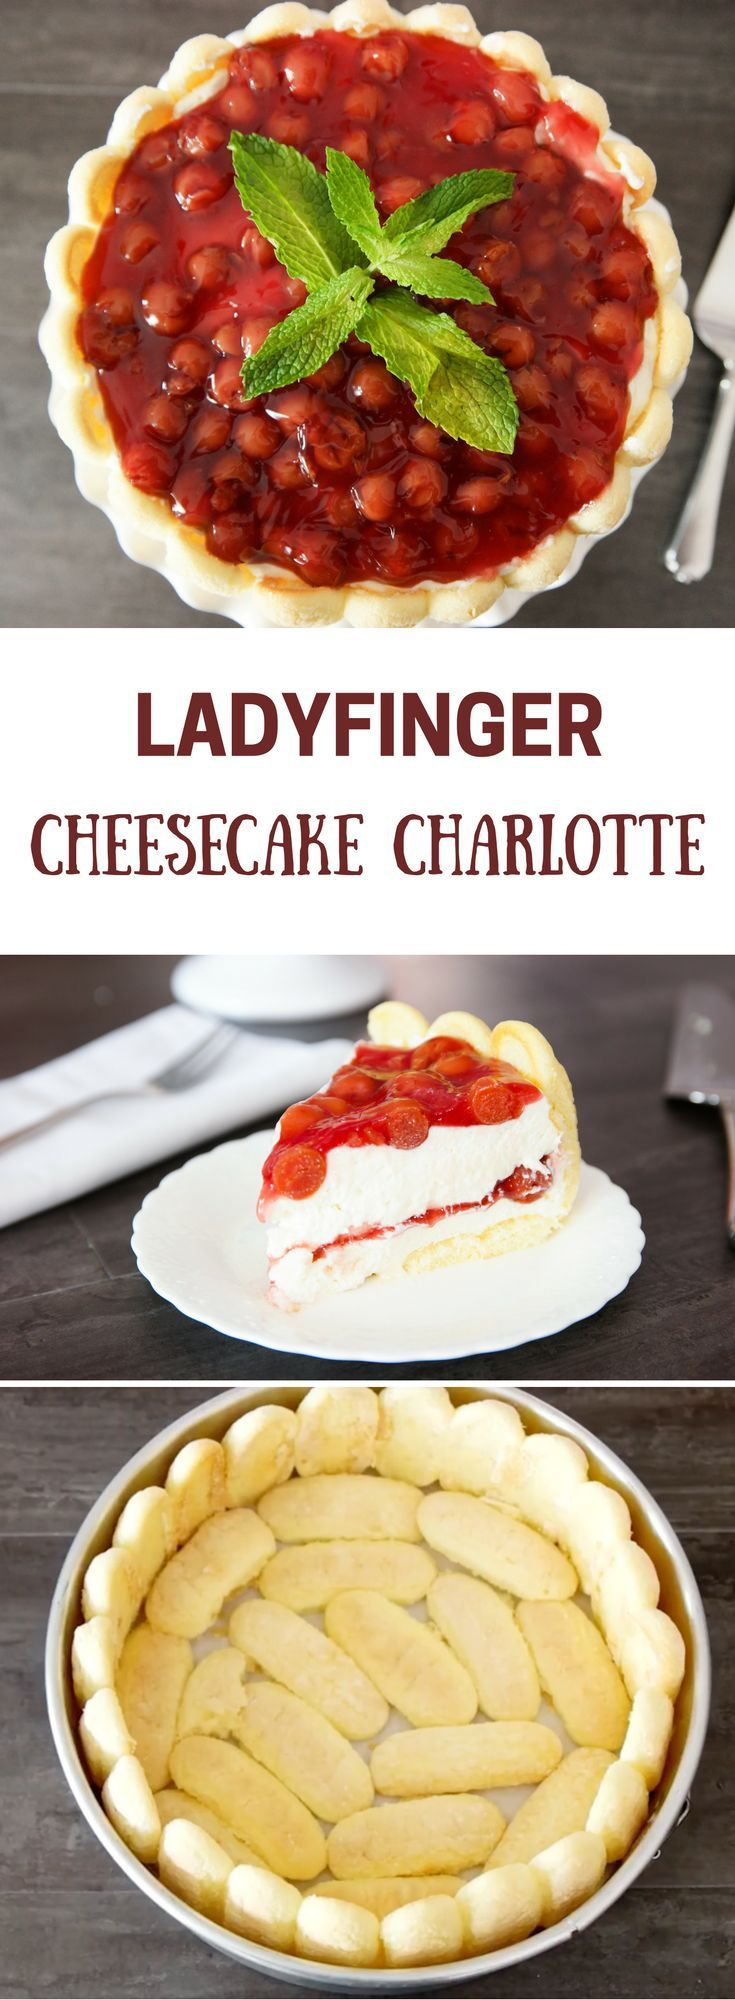 This Ladyfinger Cheesecake recipe takes your favorite dessert in a new direction. We line a cake mold with European ladyfinger biscuits from the grocery store and fill it with a smooth cheesecake filling. The end result is ambrosia at first bite. It's equ